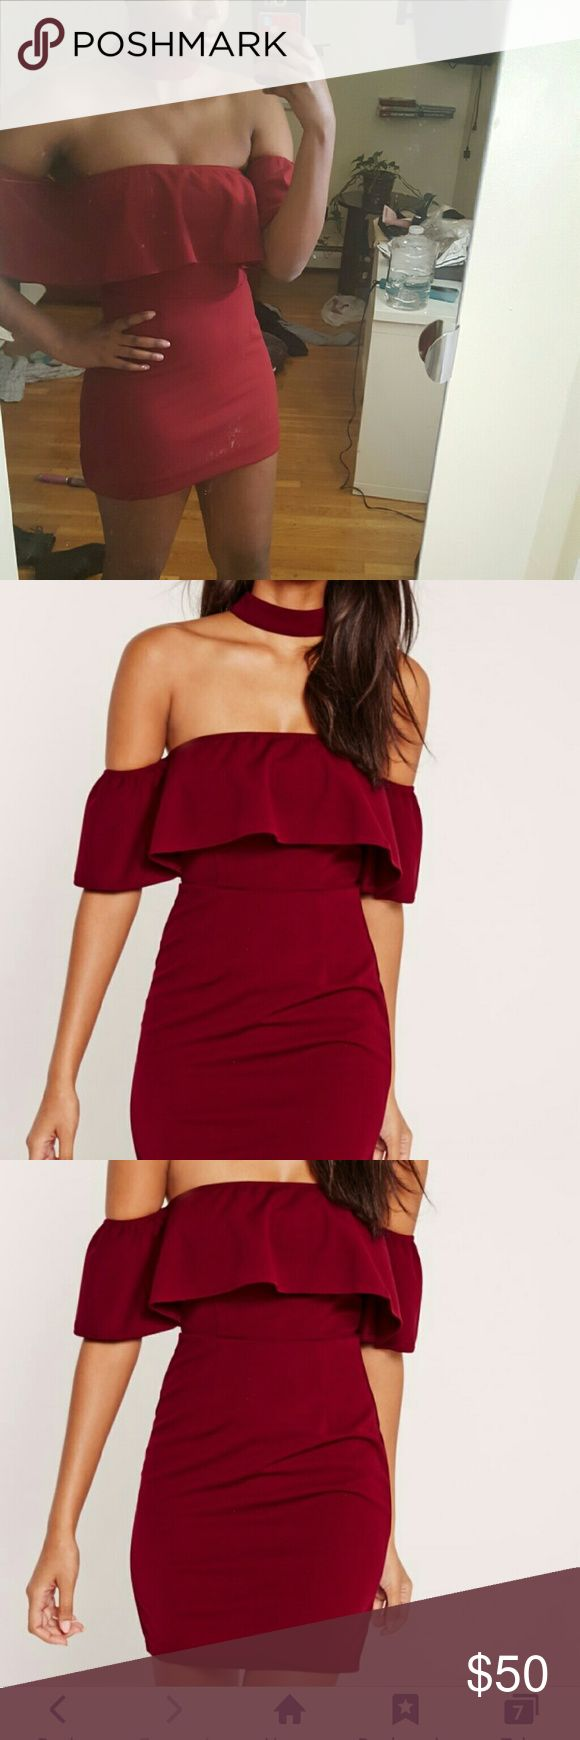 Strapless Choker Dress Never been worn (except to try it on).It looks pretty cool on! Missguided + Dresses Strapless